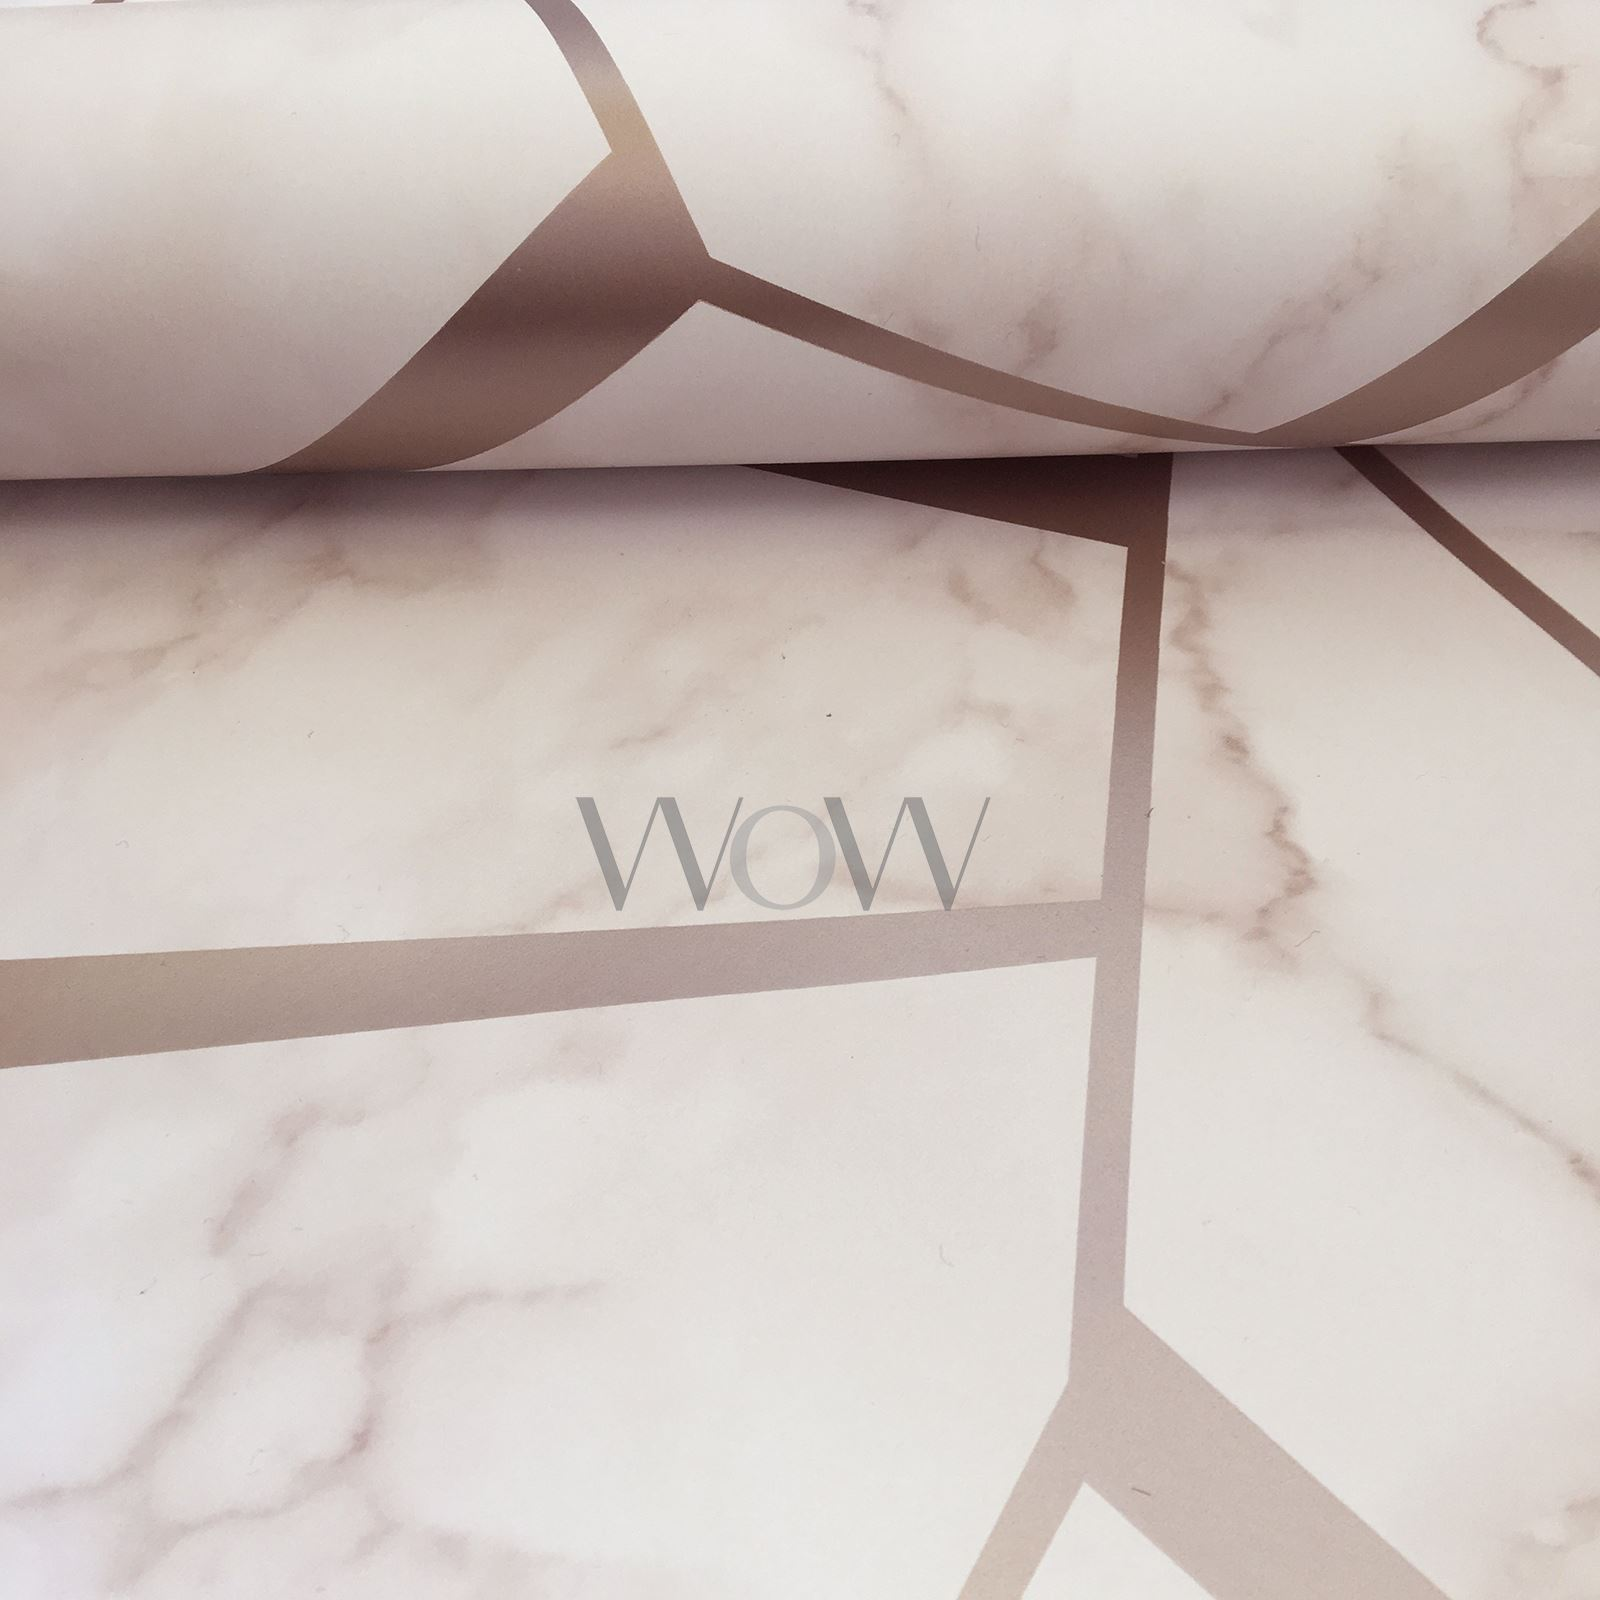 FINE-DECOR-METALLIC-GEOMETRIC-PLAIN-MARBLE-WALLPAPER-ROSE-GOLD-COPPER-SILVER thumbnail 10